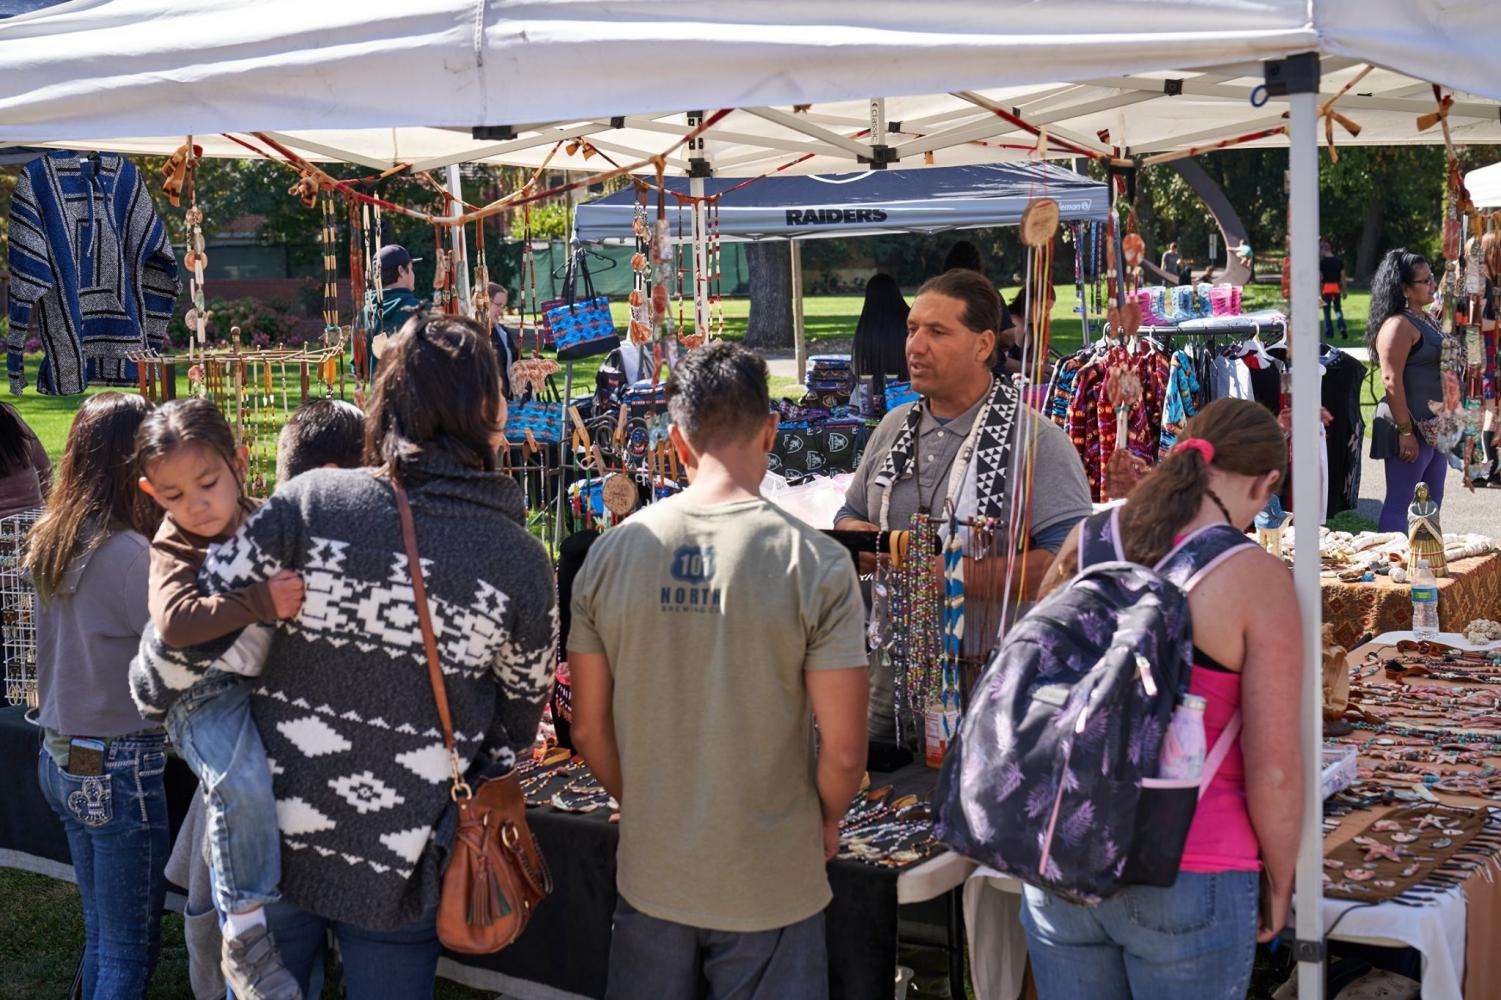 A vendor sells necklaces at SRJC's Indigenous People's Day celebration in Bertolini Quad.